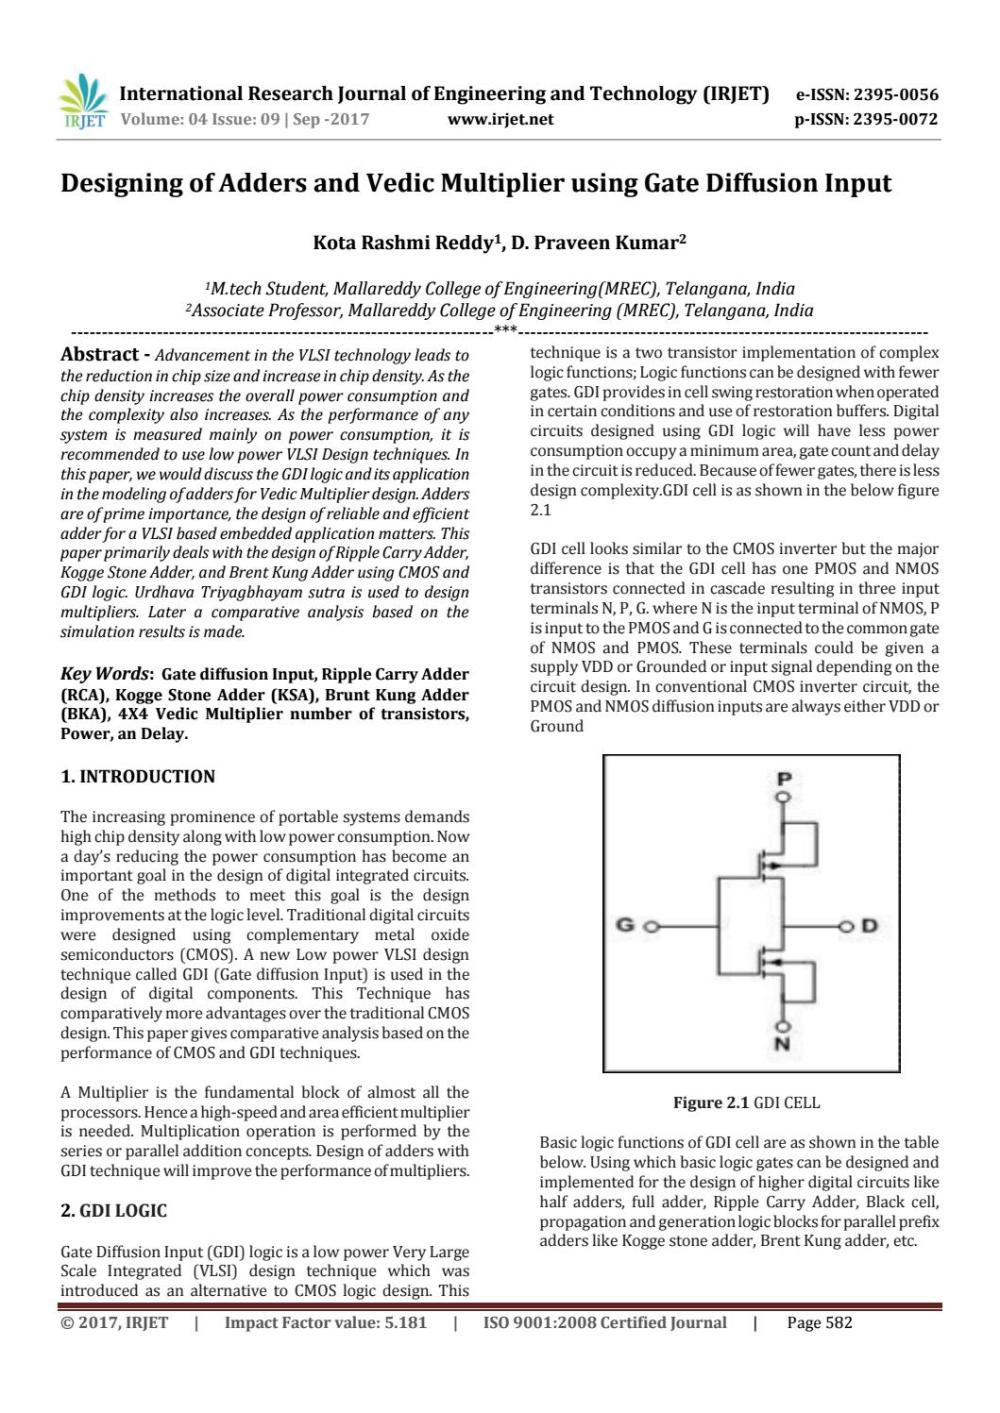 medium resolution of designing of adders and vedic multiplier using gate diffusion input by irjet journal issuu